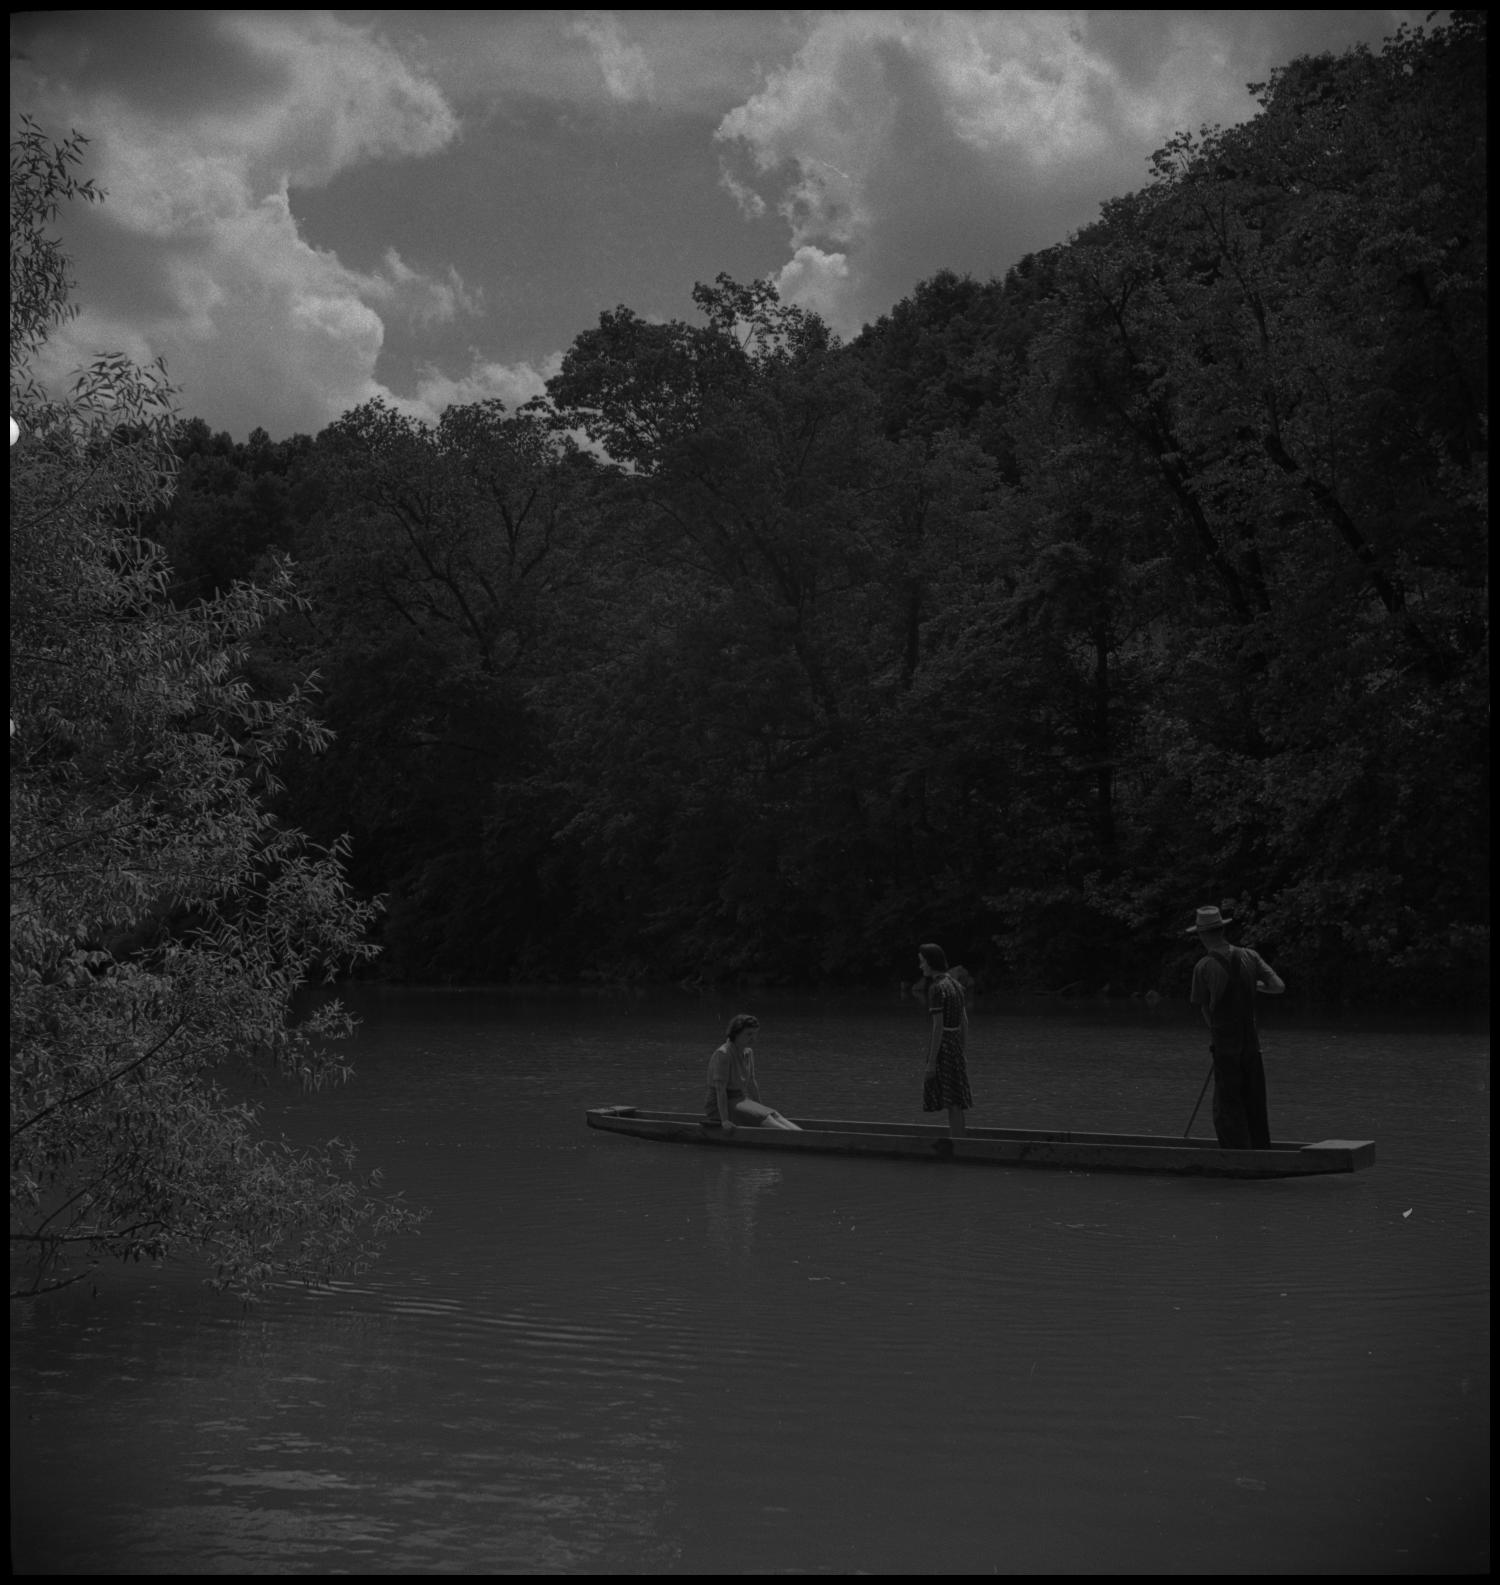 [On the canoe], Photograph of a group of three people on a canoe in the creek. In the image, the group of two girls and one boy are inside the canoe, one sitting and two standing, in the middle of a creek. Large trees go all the way to the shoreline.,